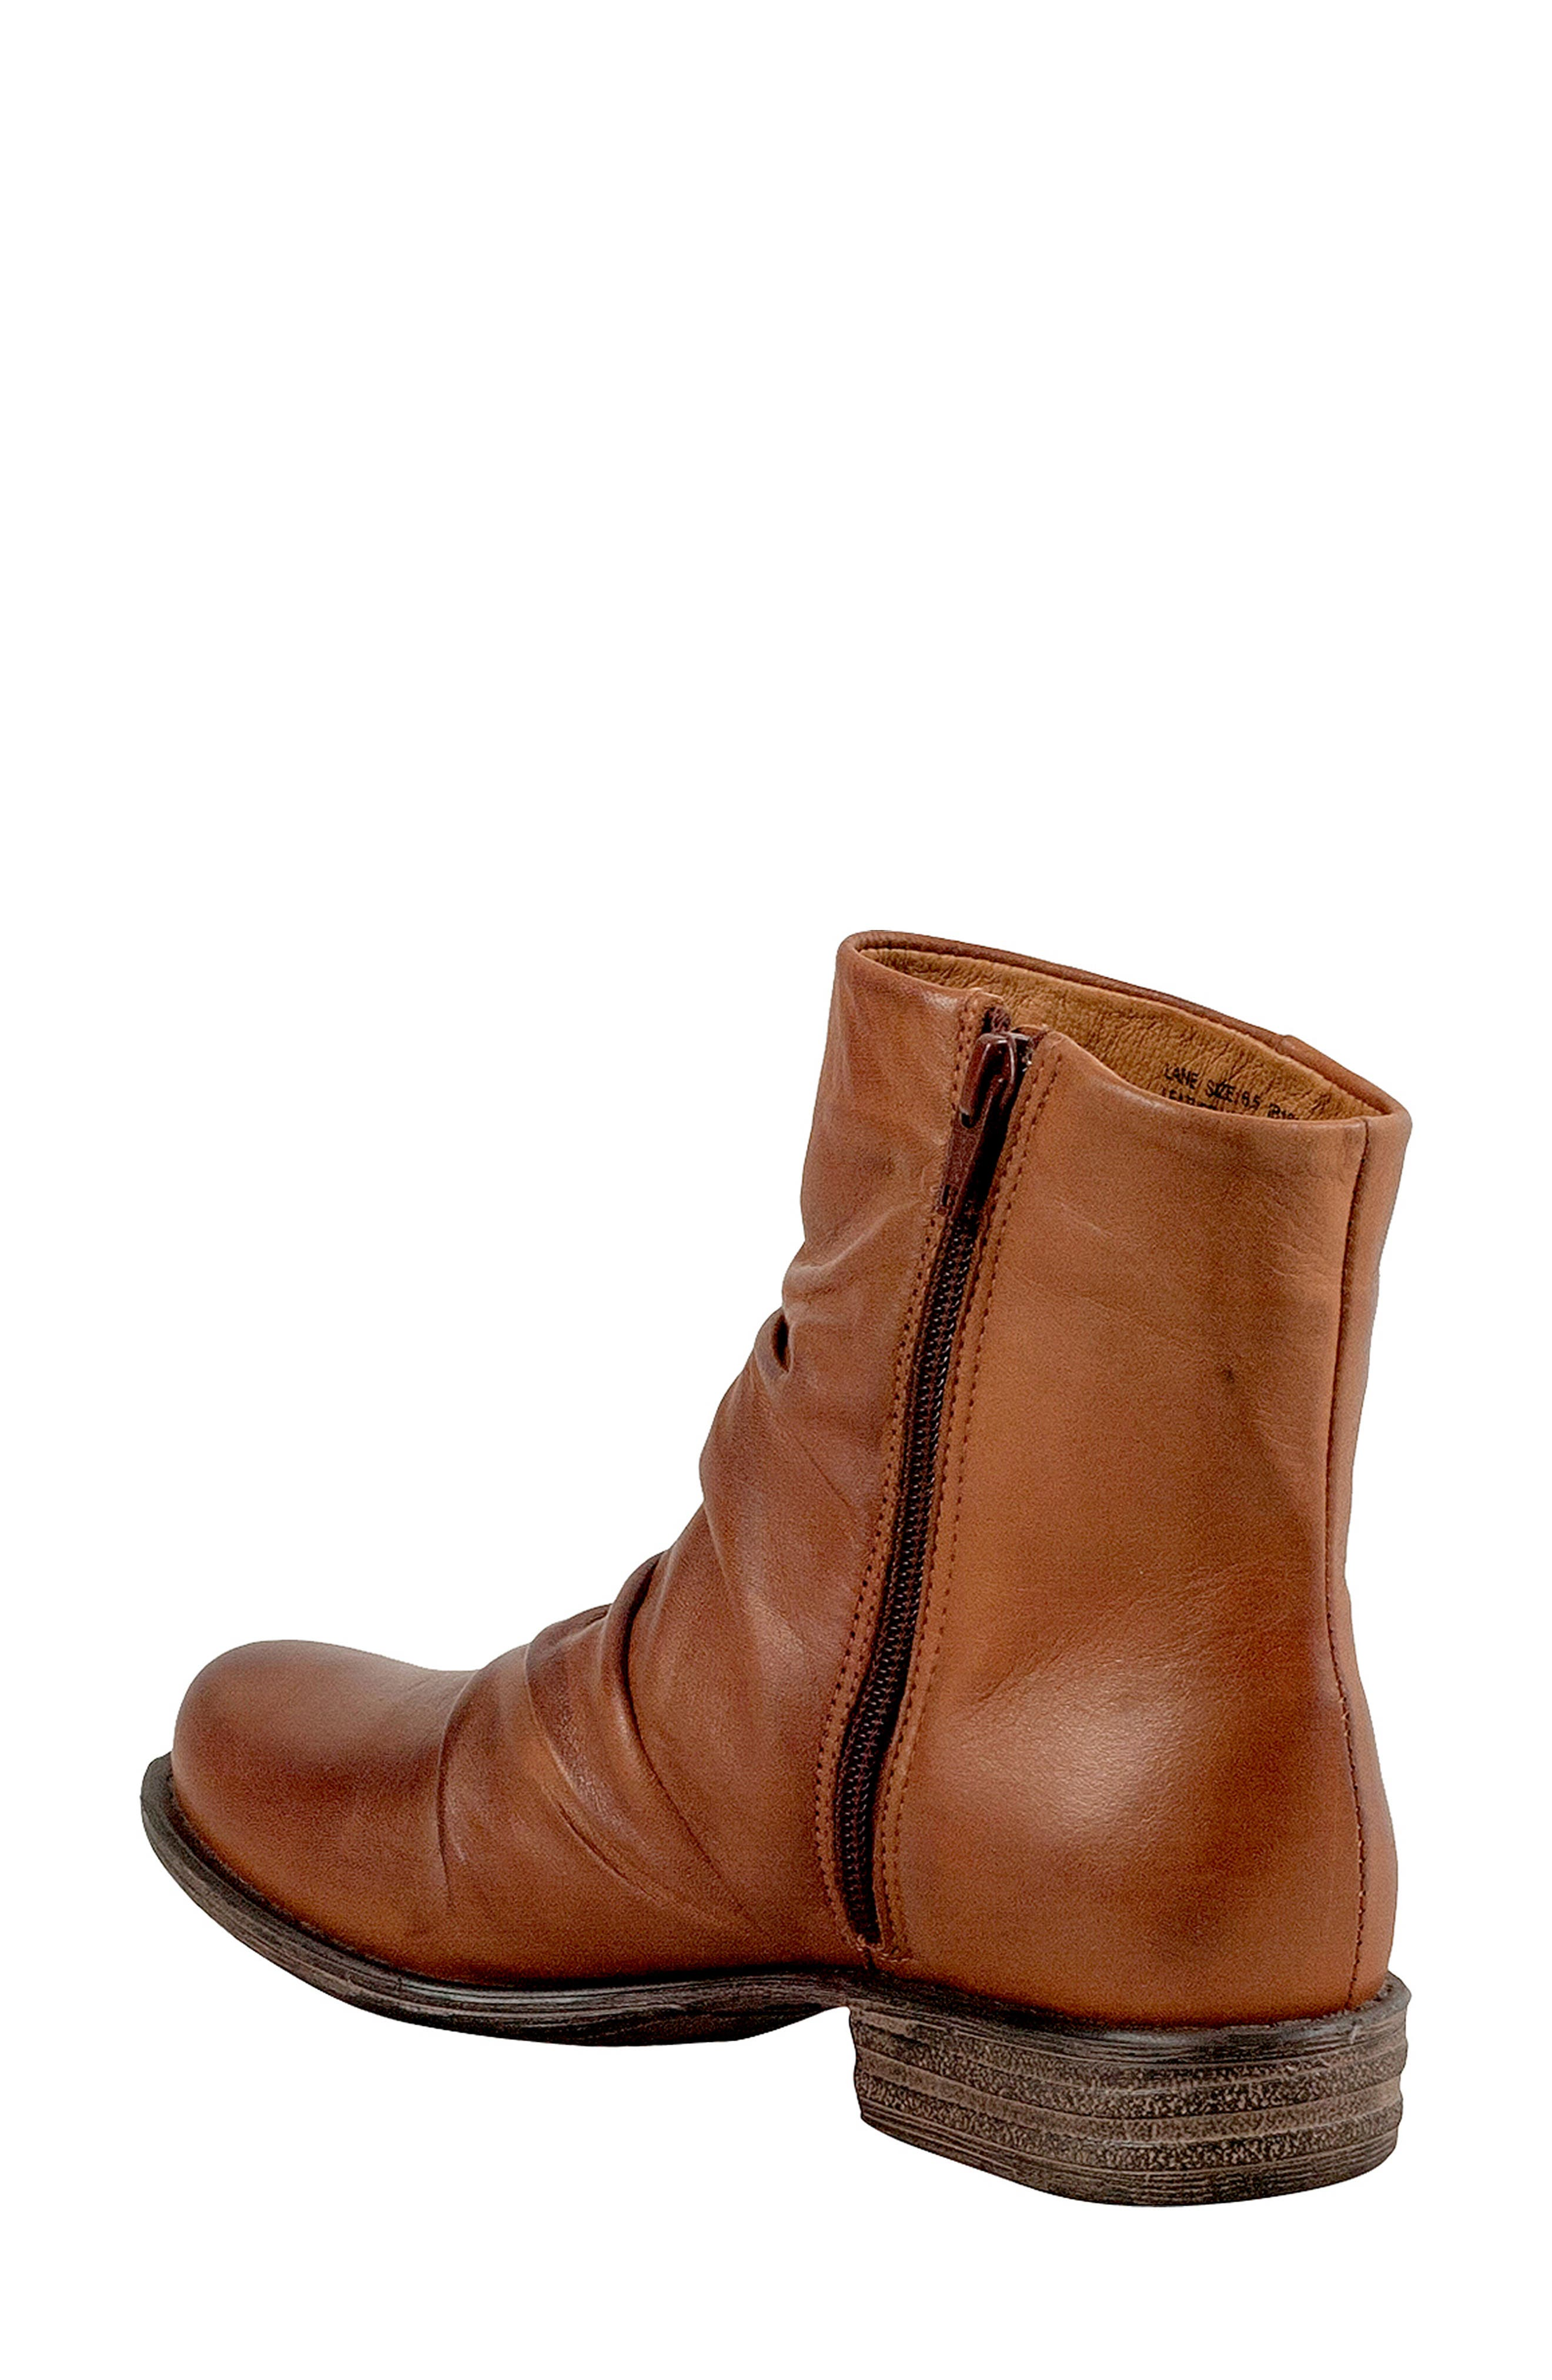 Lane Bootie,                             Alternate thumbnail 2, color,                             BRANDY LEATHER